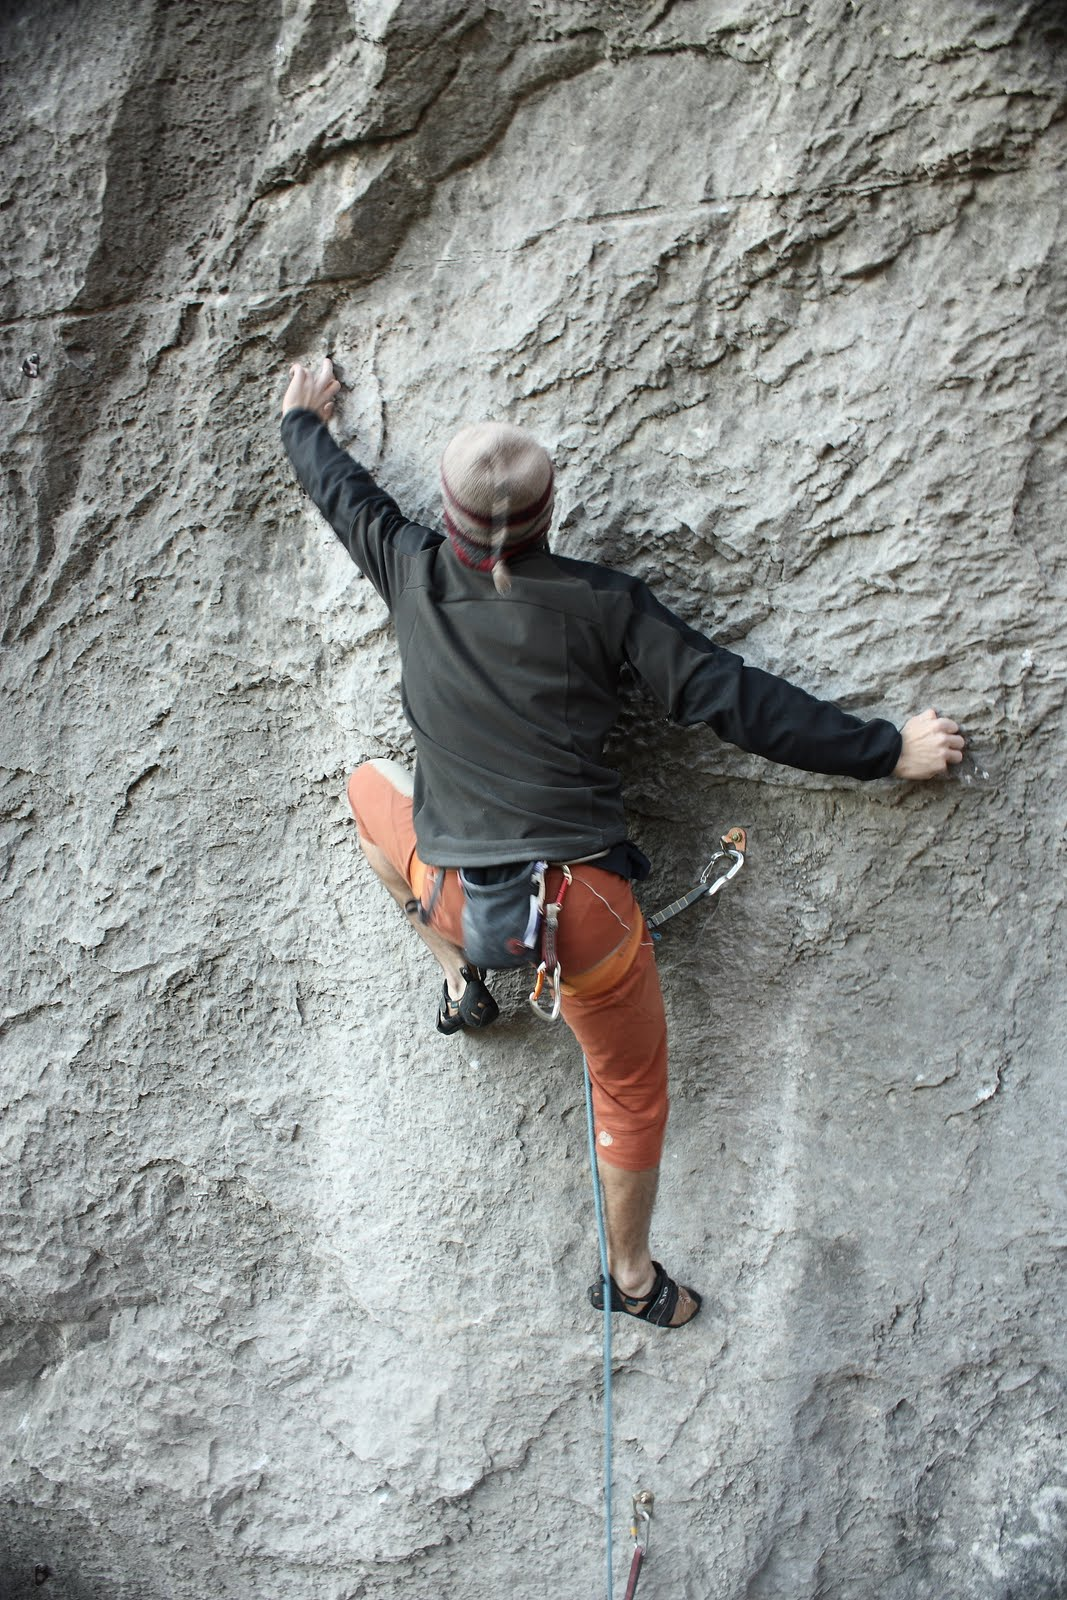 Andrei Preda in the crux of Hai sa fim high - 8a